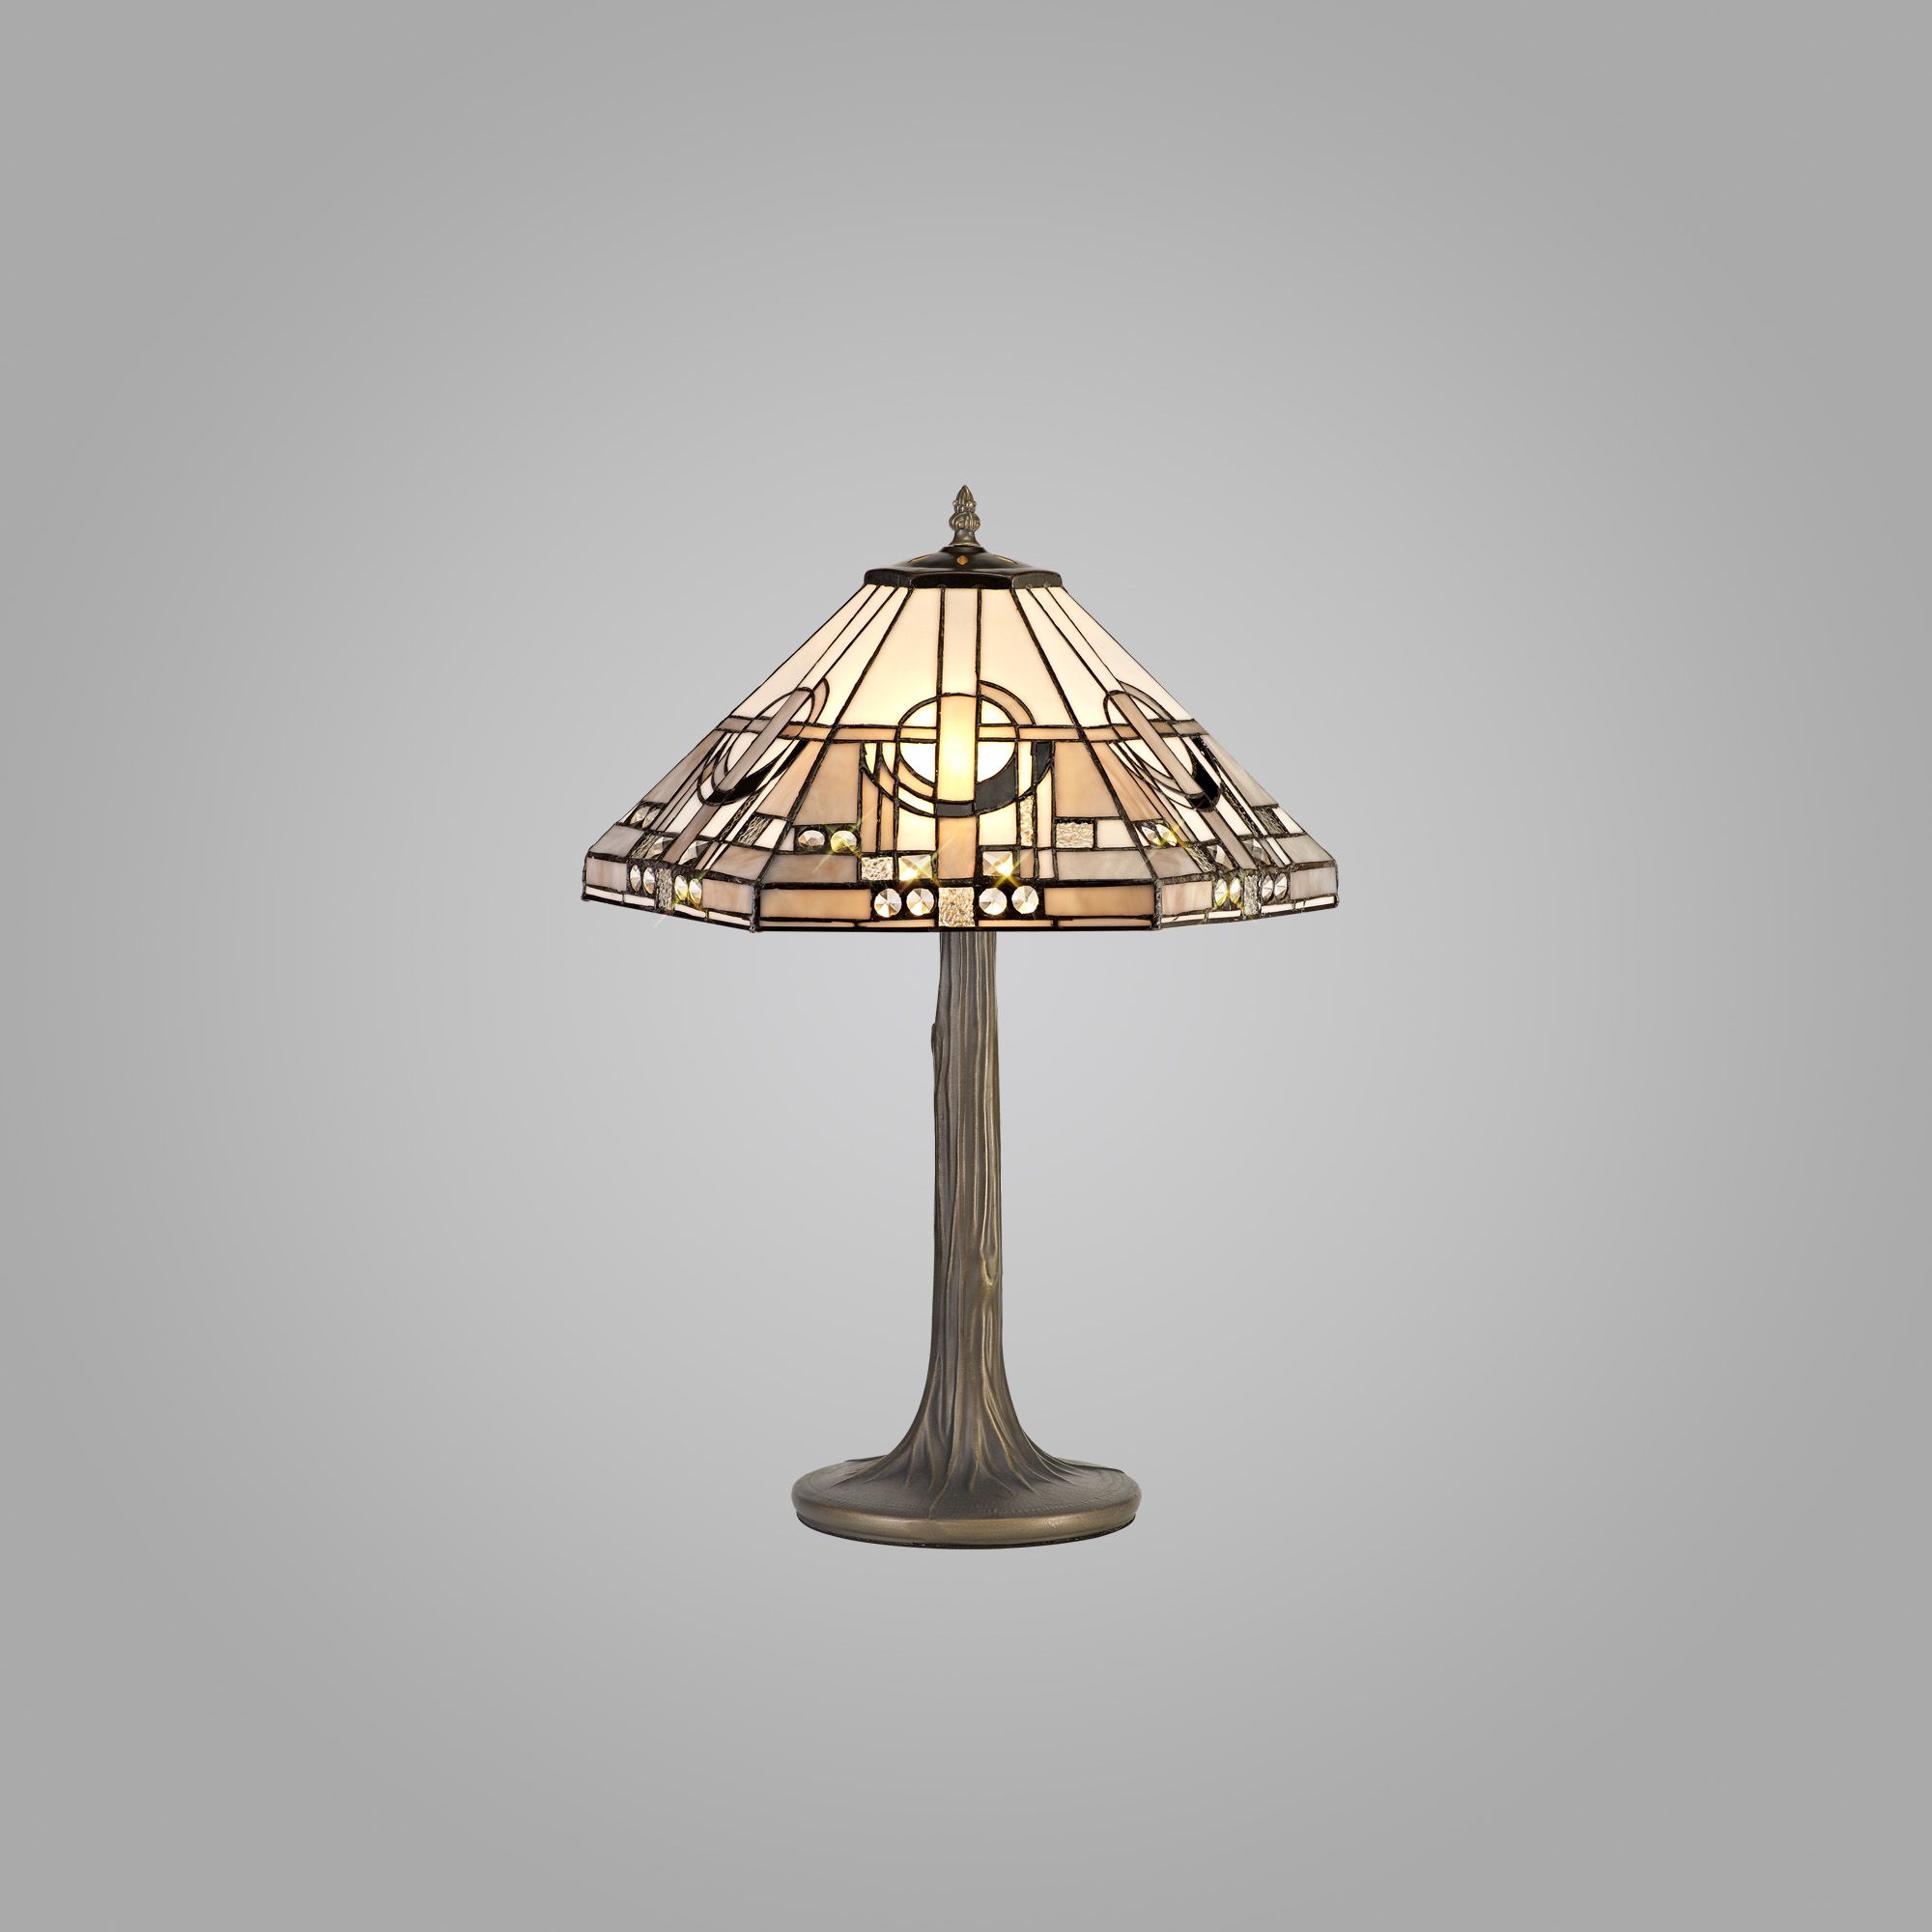 2 Light Tree Like Table Lamp E27 With 40cm Tiffany Shade, White/Grey/Black/Clear Crystal/Aged Antique Brass